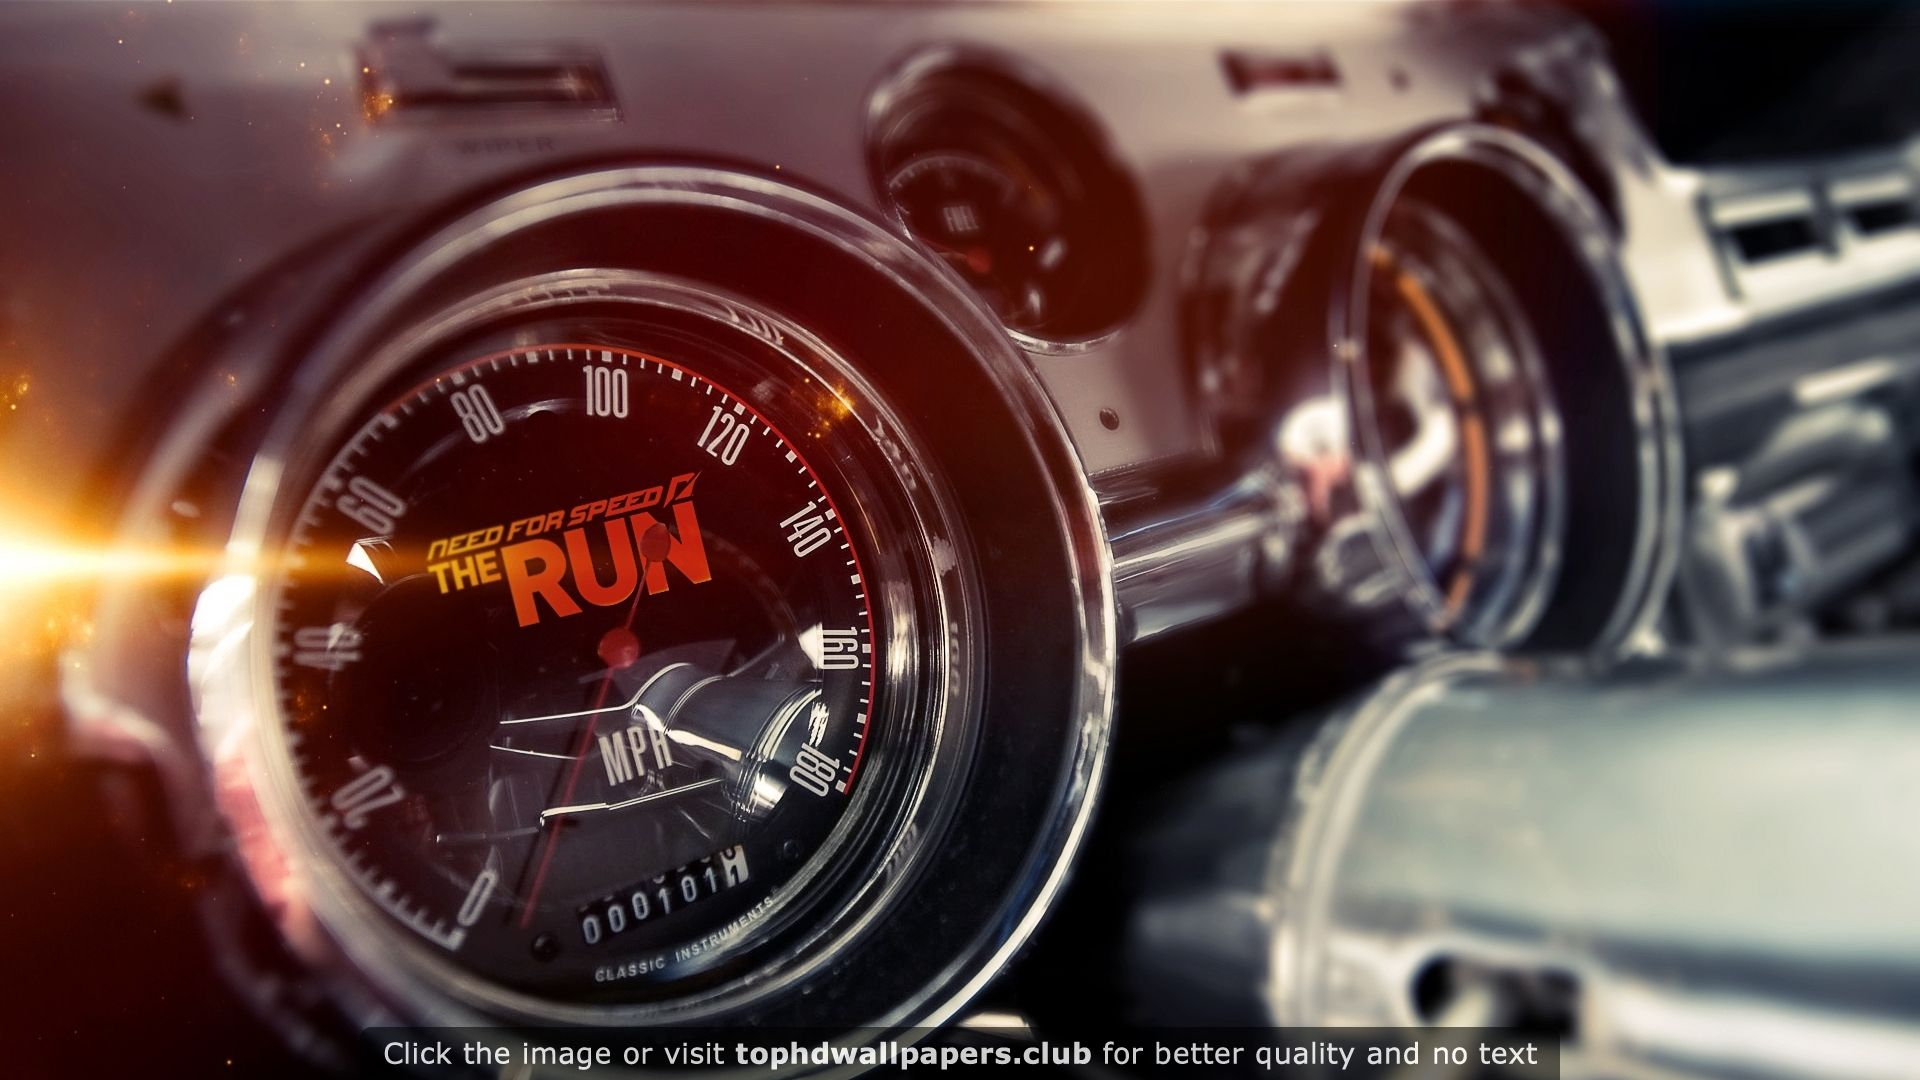 Nfs The Run Classic Hd Wallpaper For Your Pc Mac Or Mobile Device